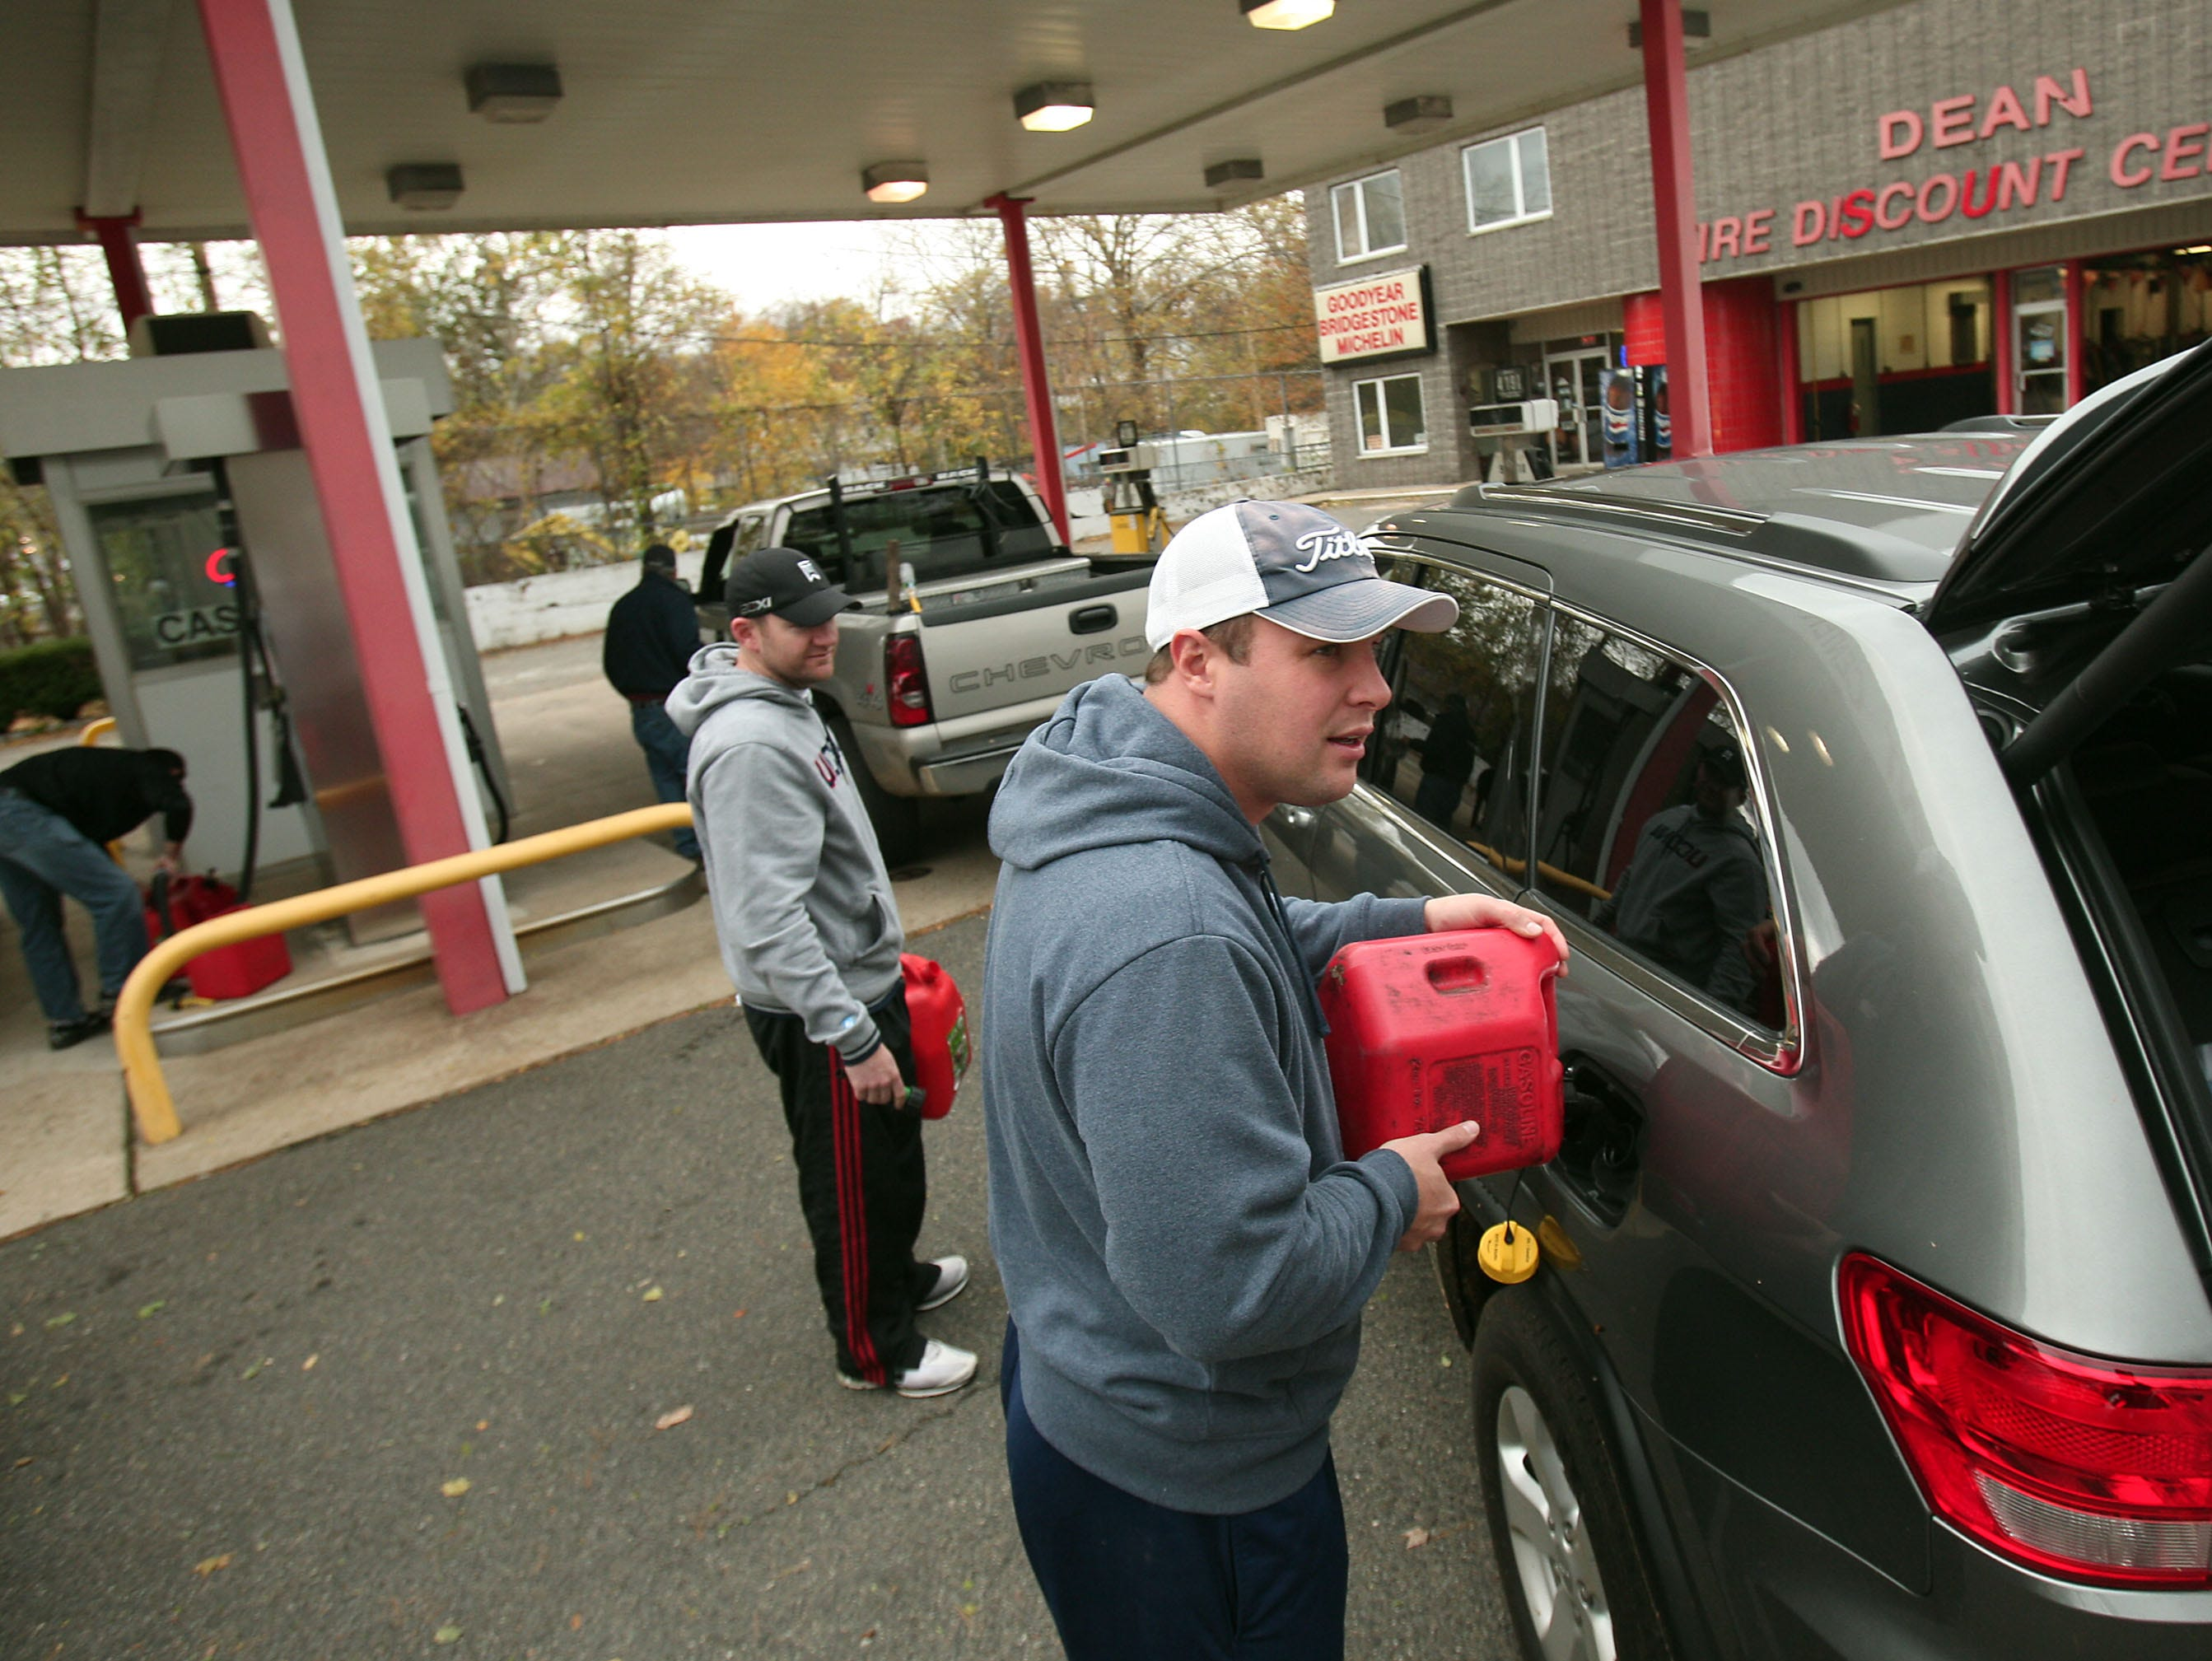 Morristown, NJ-- October 31, 2012--Tom Collins of Morristown, NJ puts gas in his SUV. Collins waited over 45 minutes to fill up his tank and gas cans at Dean Discount Center in Morristown in the aftermath of Hurricane Sandy. Bob Karp/Staff Photographer/DAILY RECORD